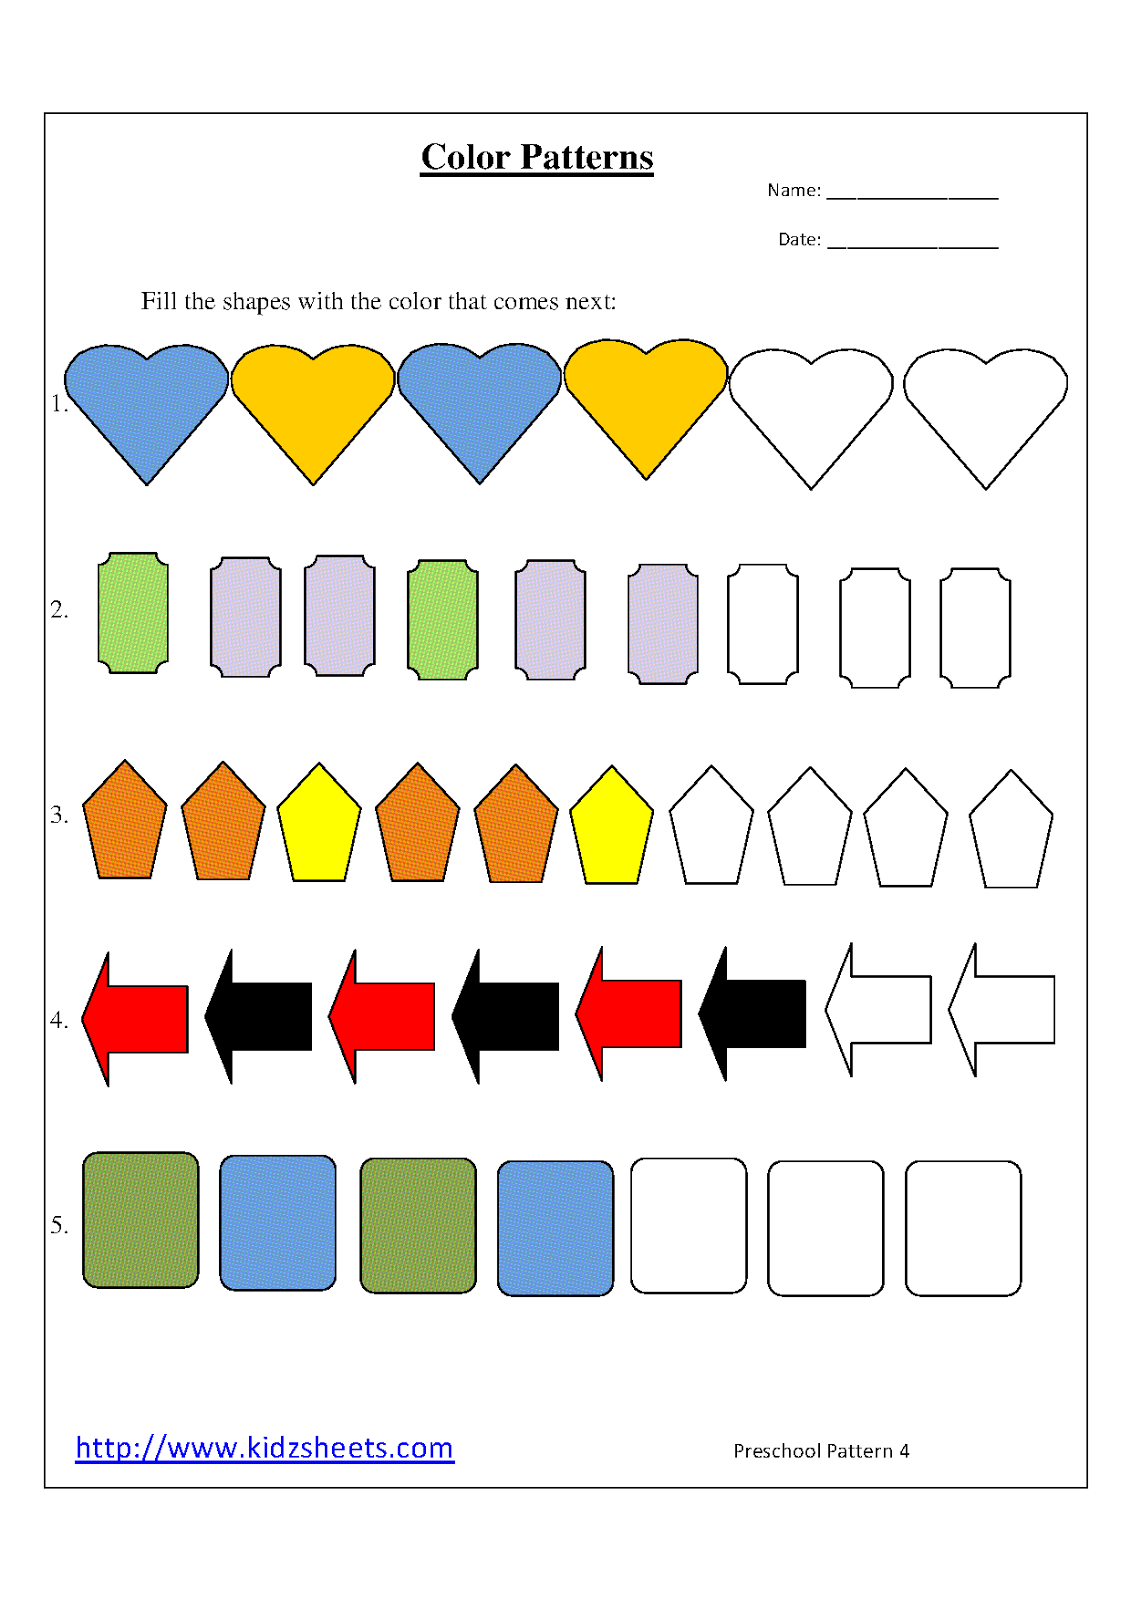 preschool pattern learn patterns with shapes colors number. Black Bedroom Furniture Sets. Home Design Ideas